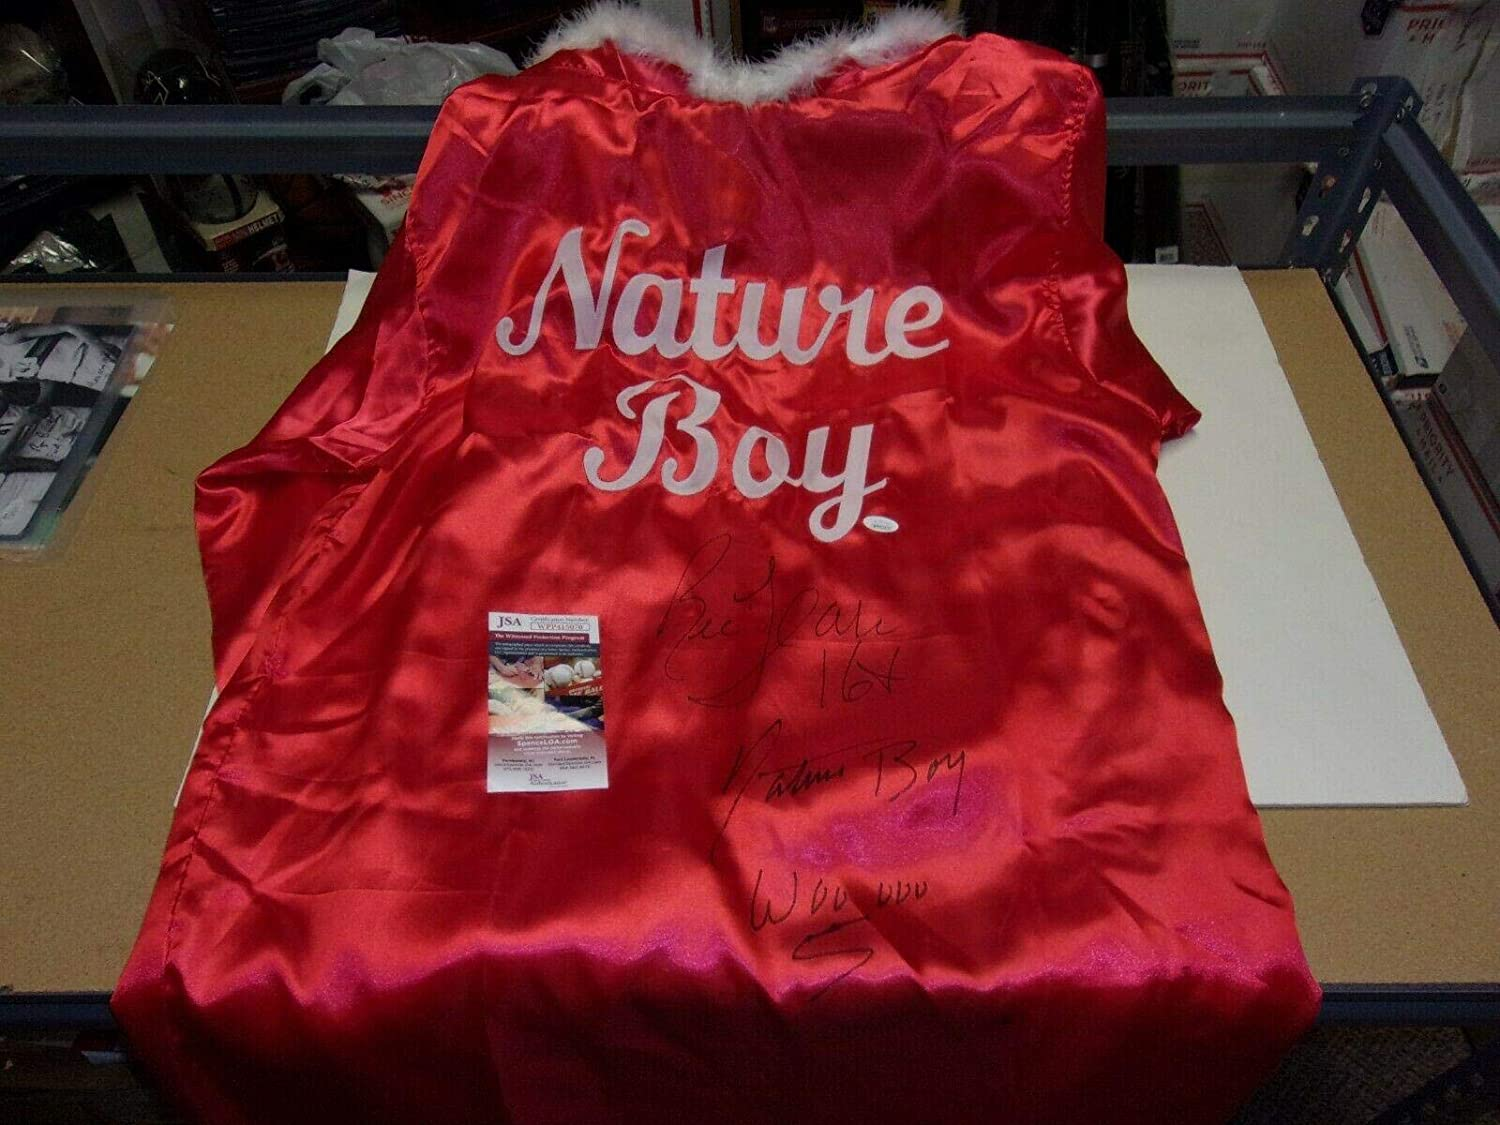 Ric Flair Nature Boy 16x,hof!,wooooo coa Signed Wrestling Championship Robe - JSA Certified - Autographed Wrestling Robes, Trunks and Belts